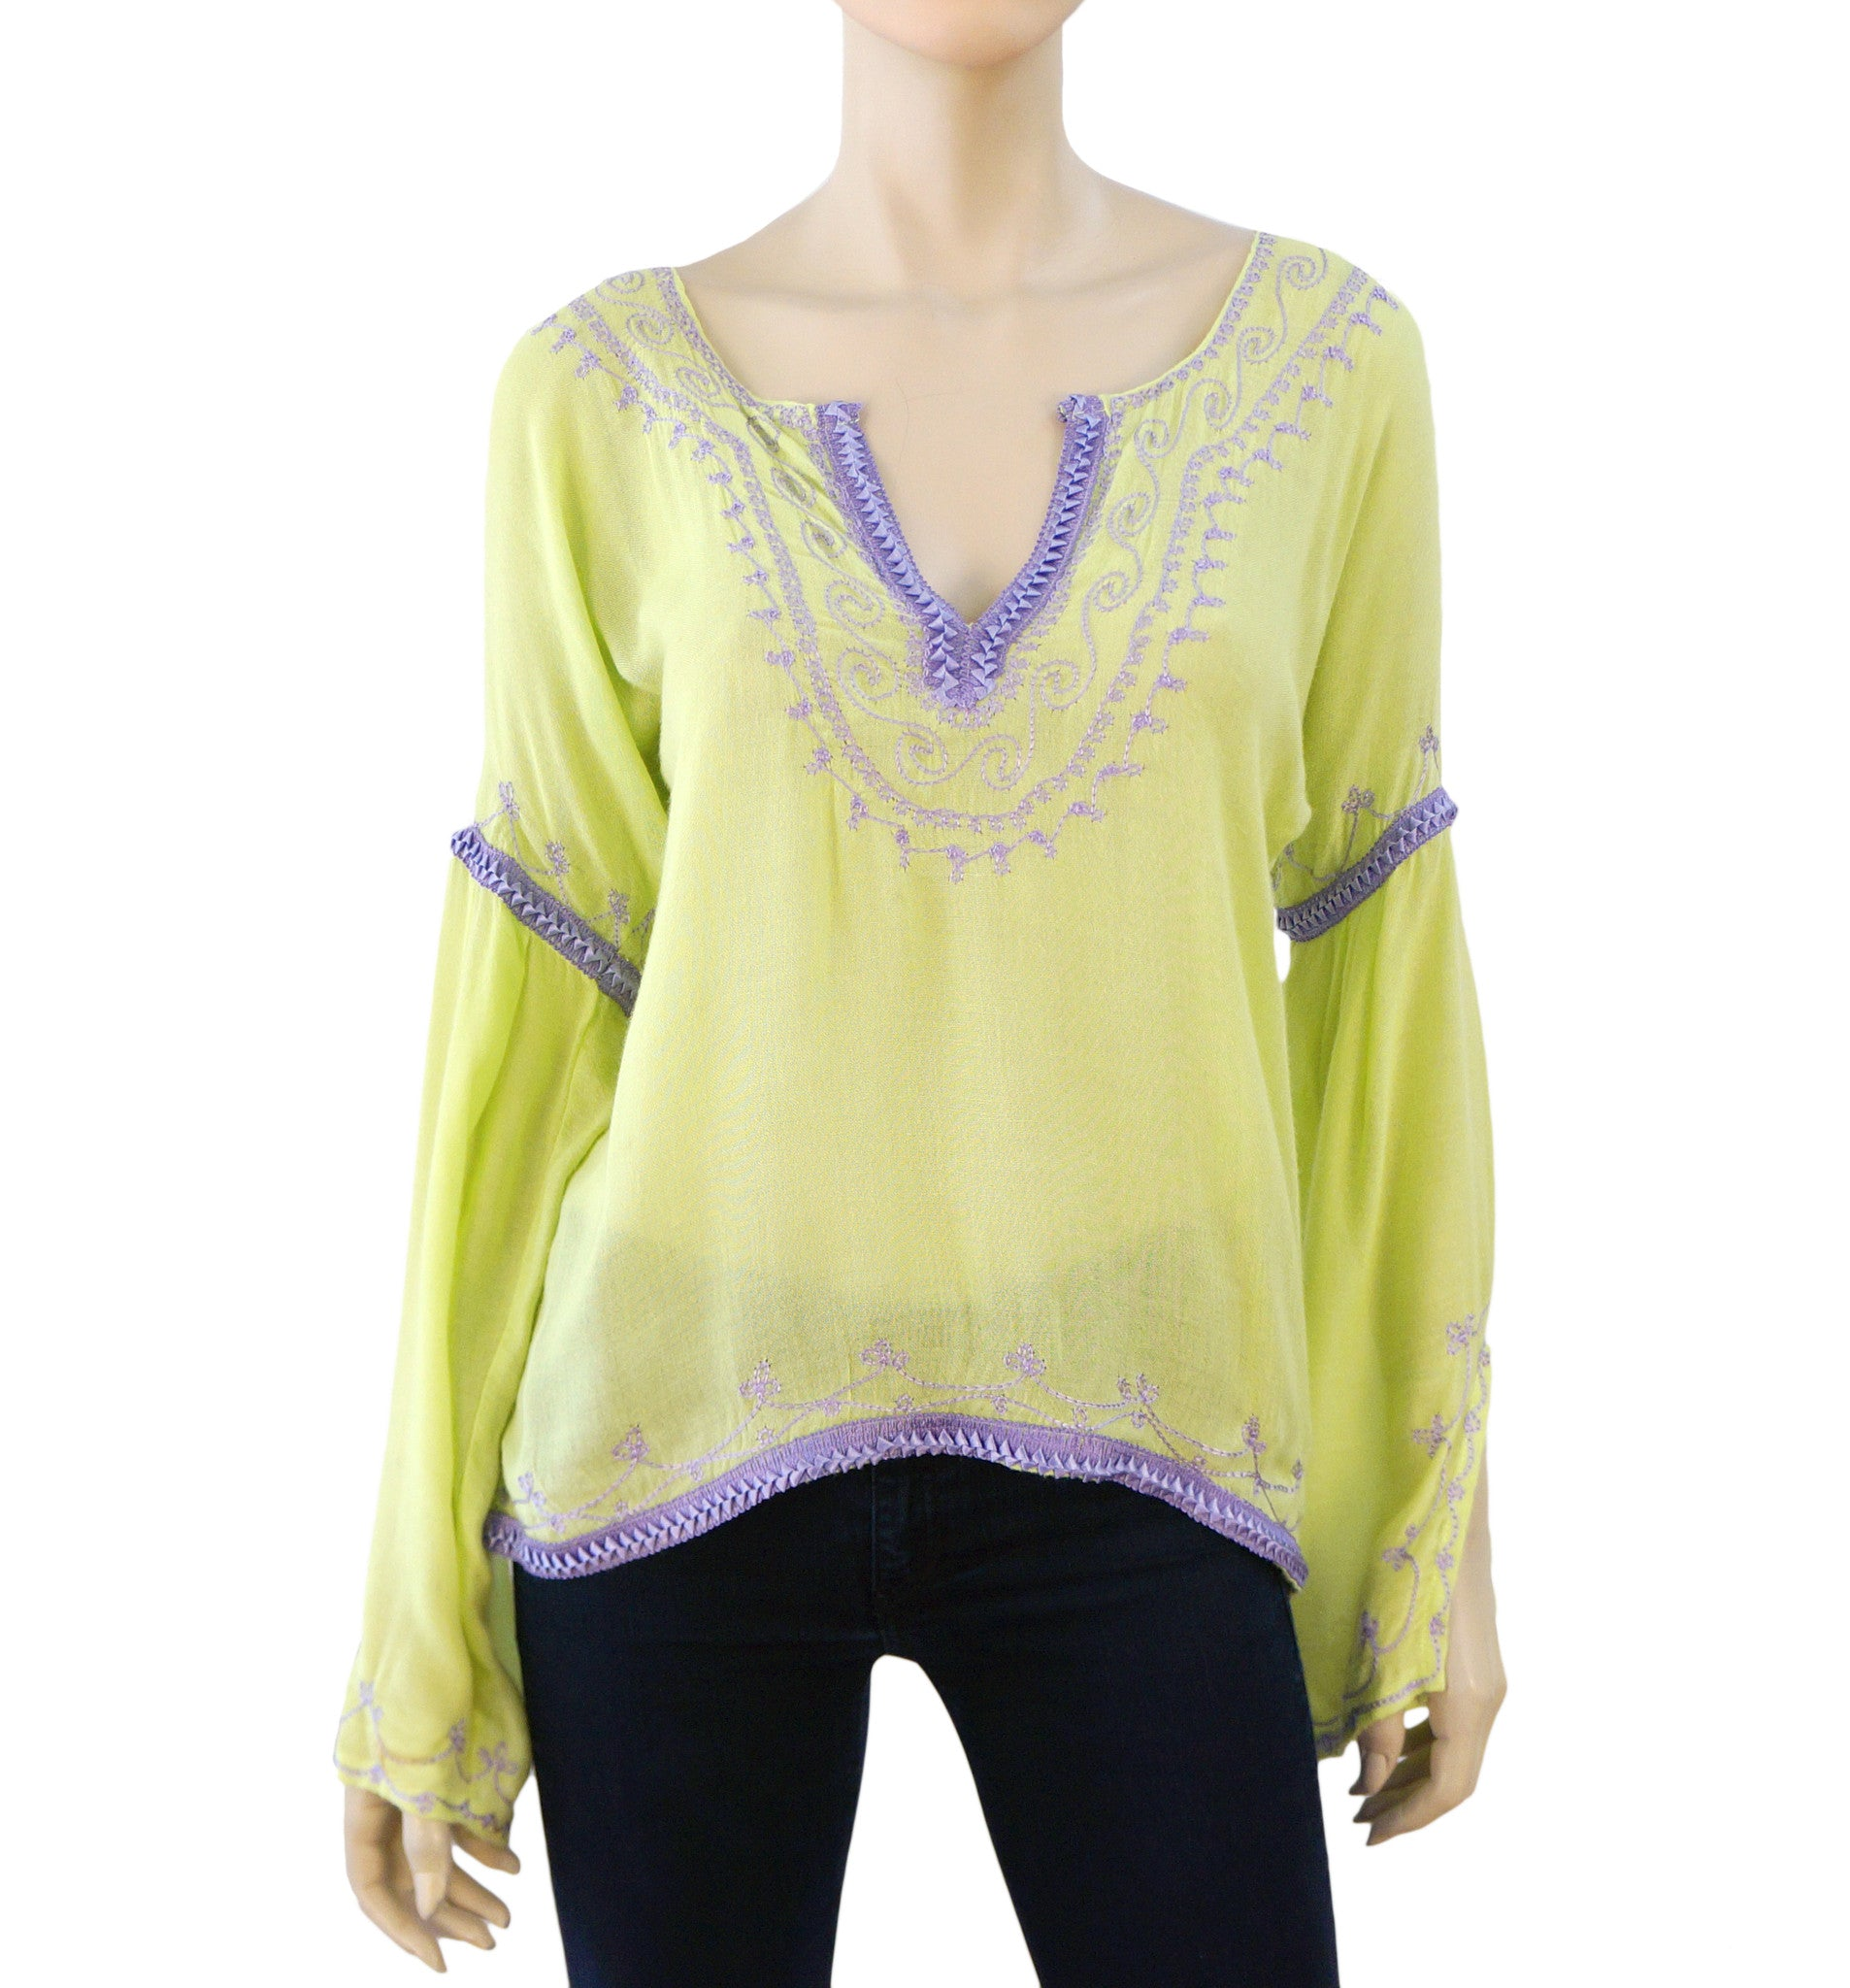 75ad56d56b2b8e DONALE ST. BARTH Yellow Green Cotton Gauze Top Cover-Up Blouse One ...